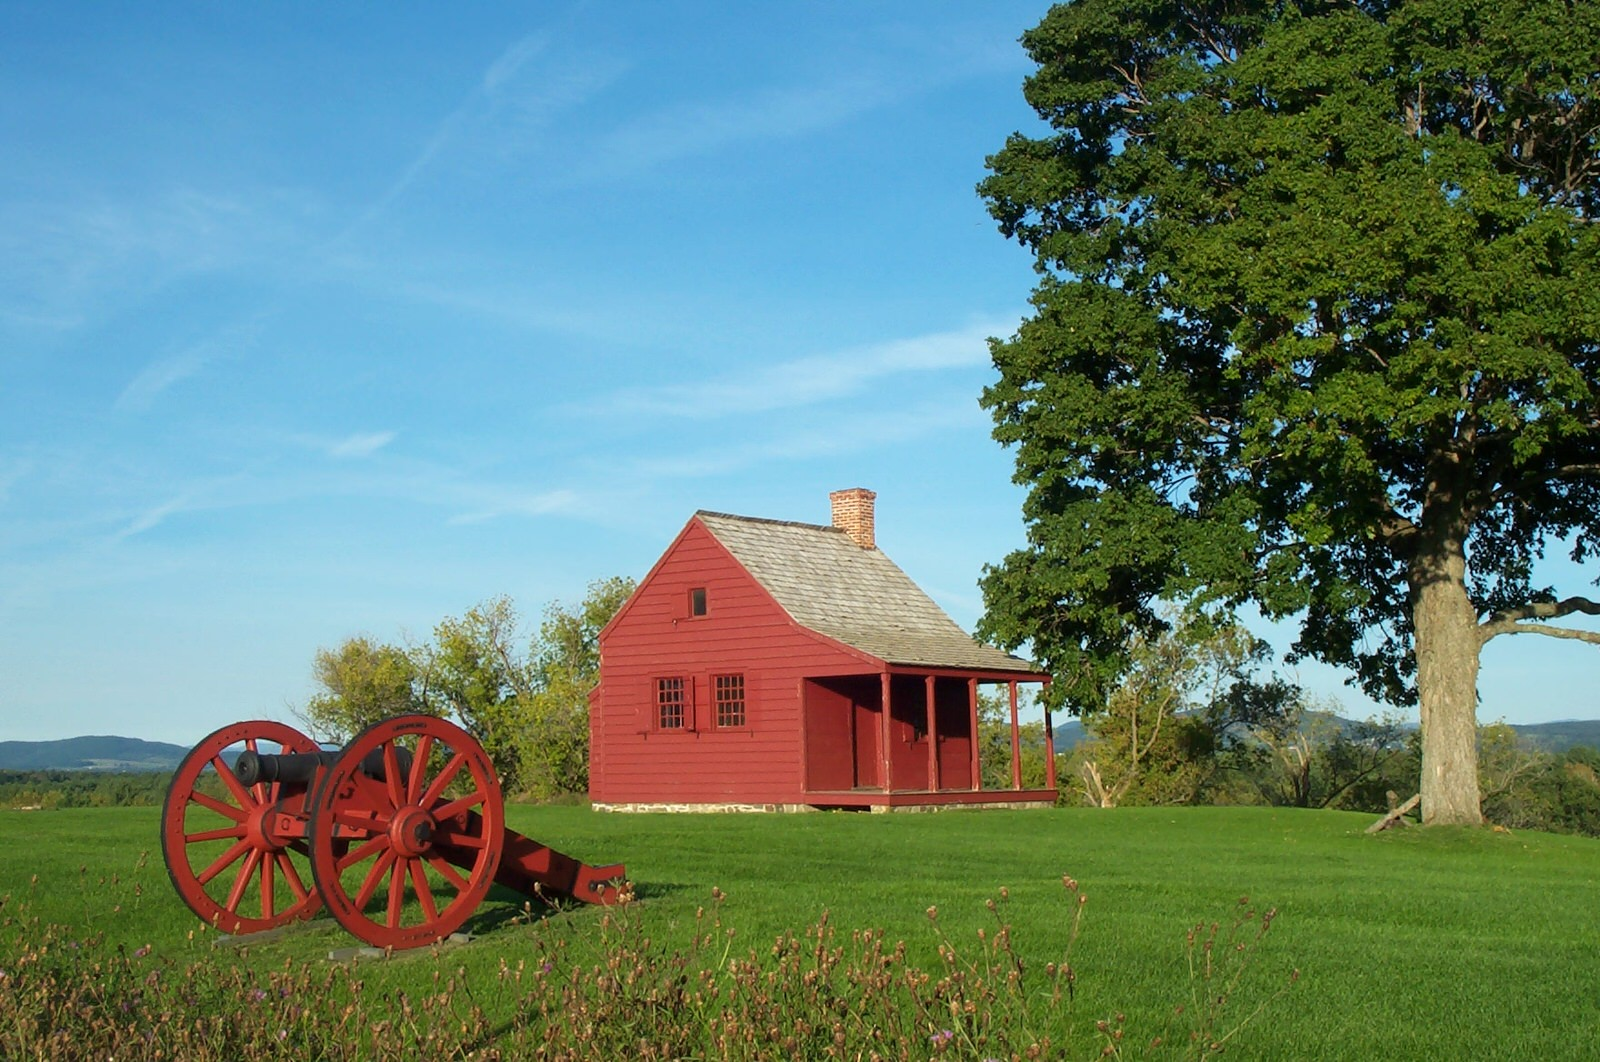 photo: Farmhouse that served as a mid-level headquarters building during battles. Photo by NPS.